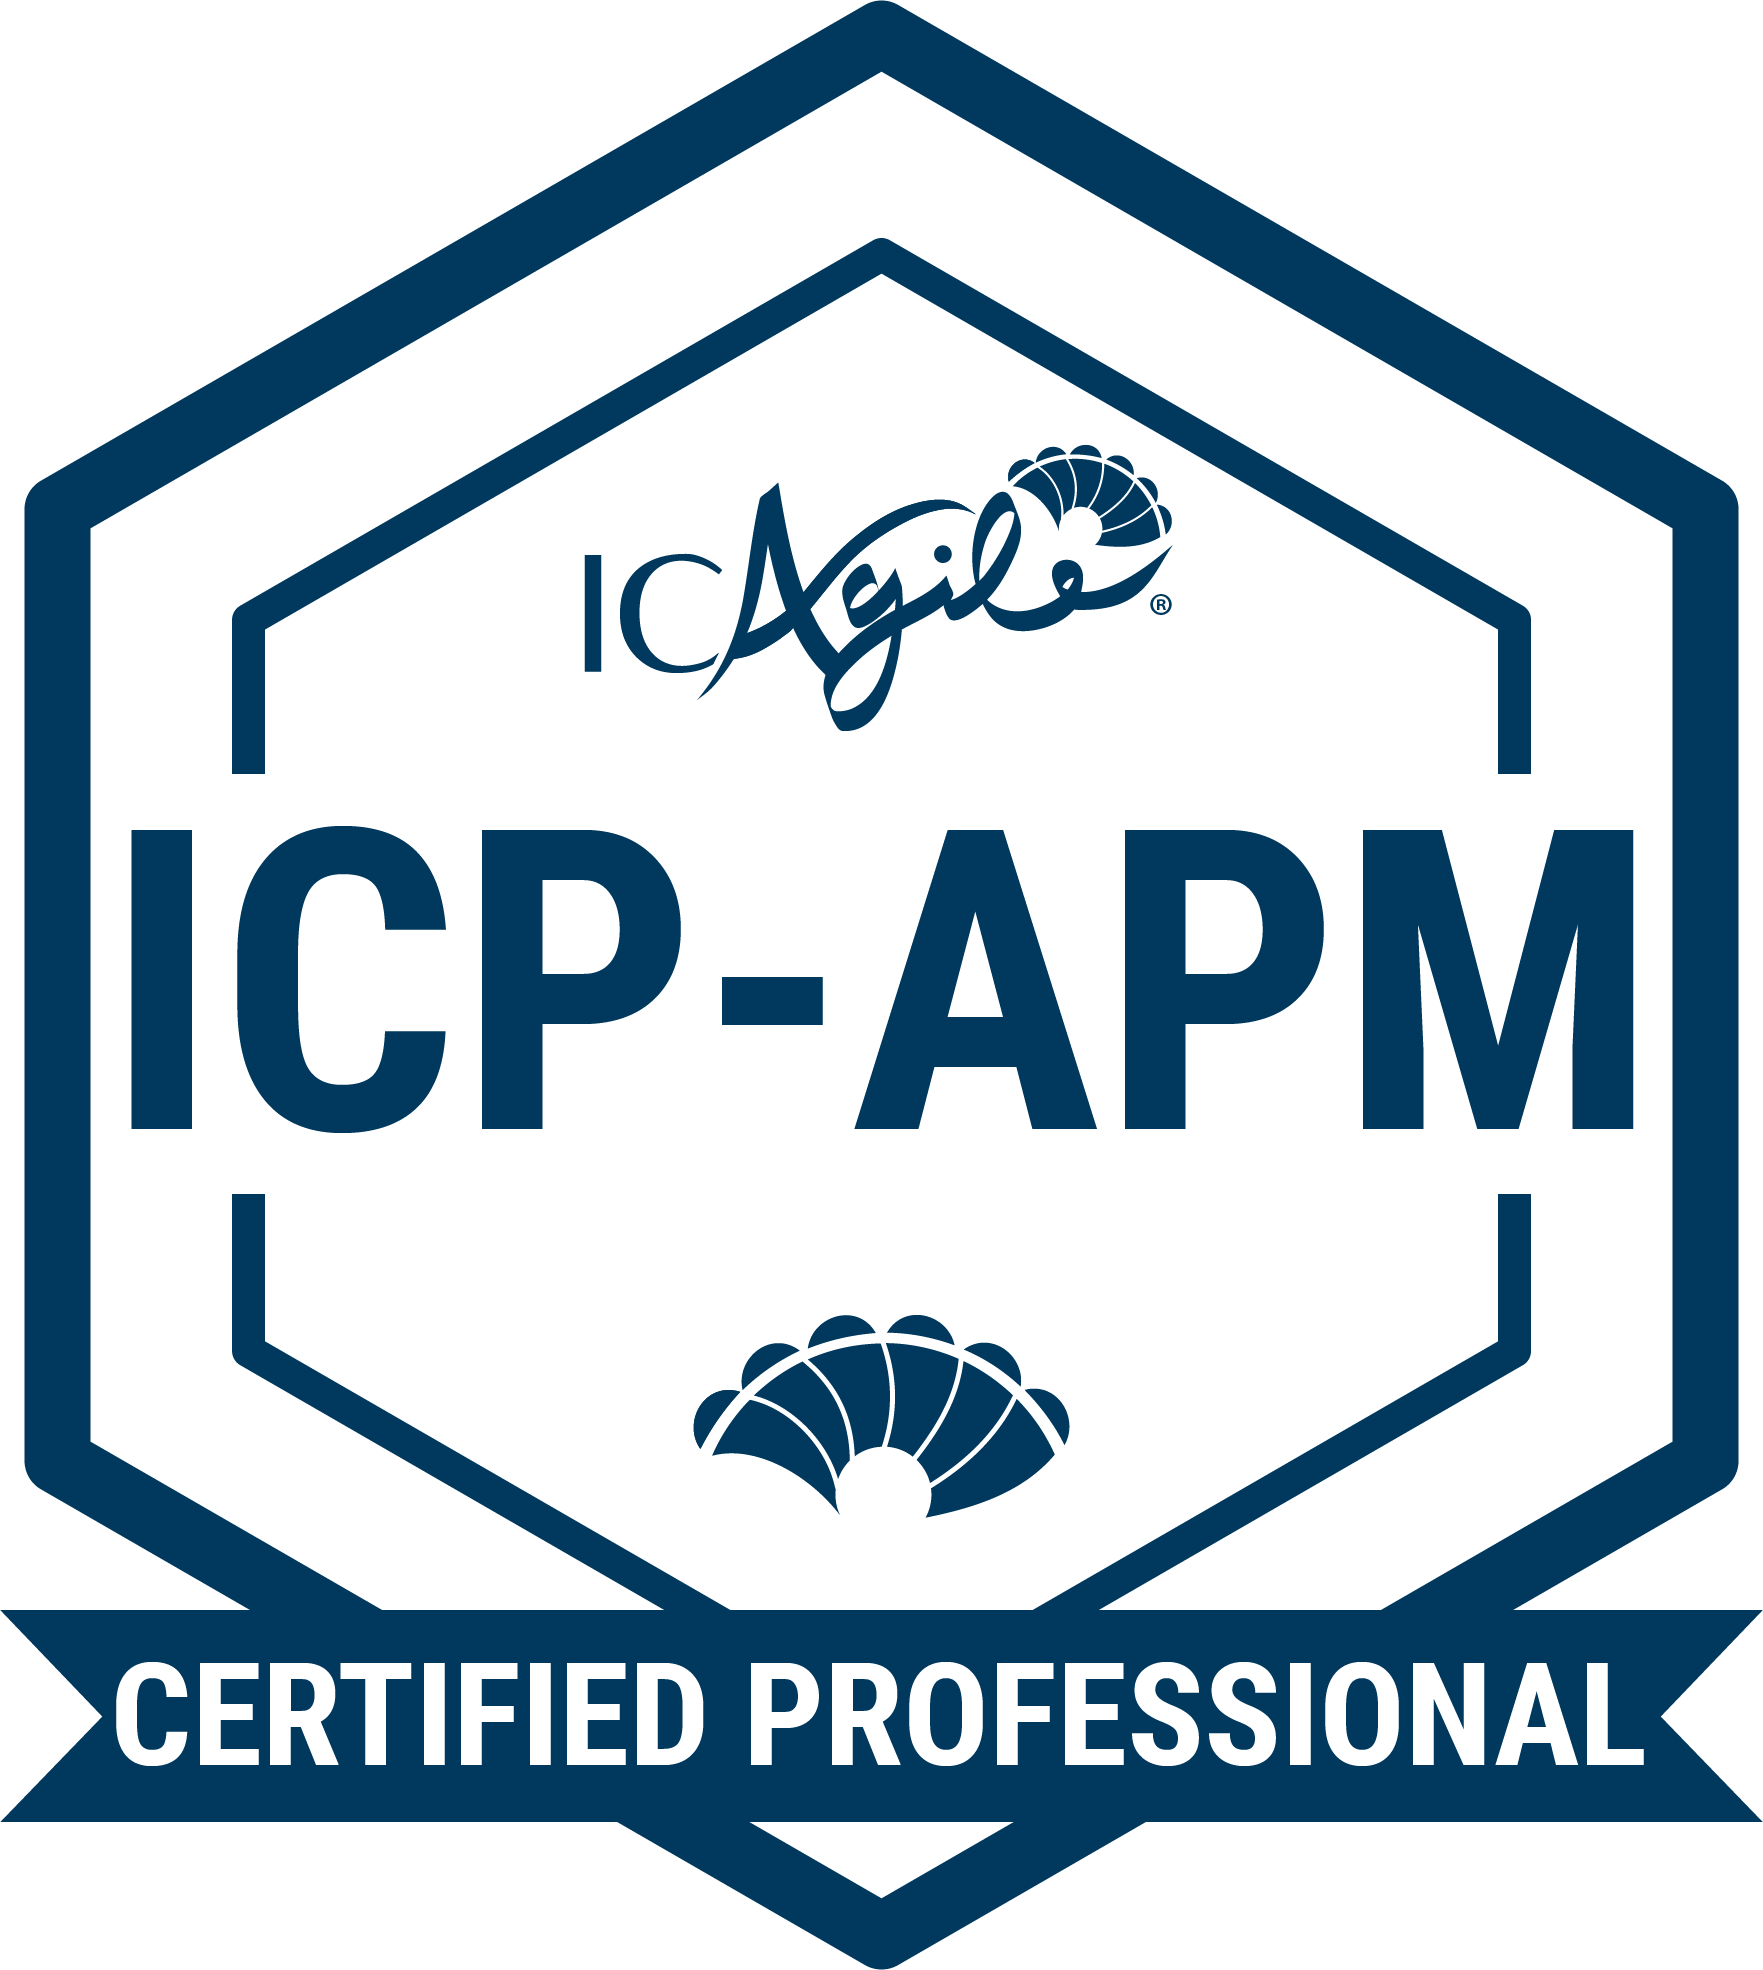 ICAgile Certified Professional - Agile Project and Delivery Management